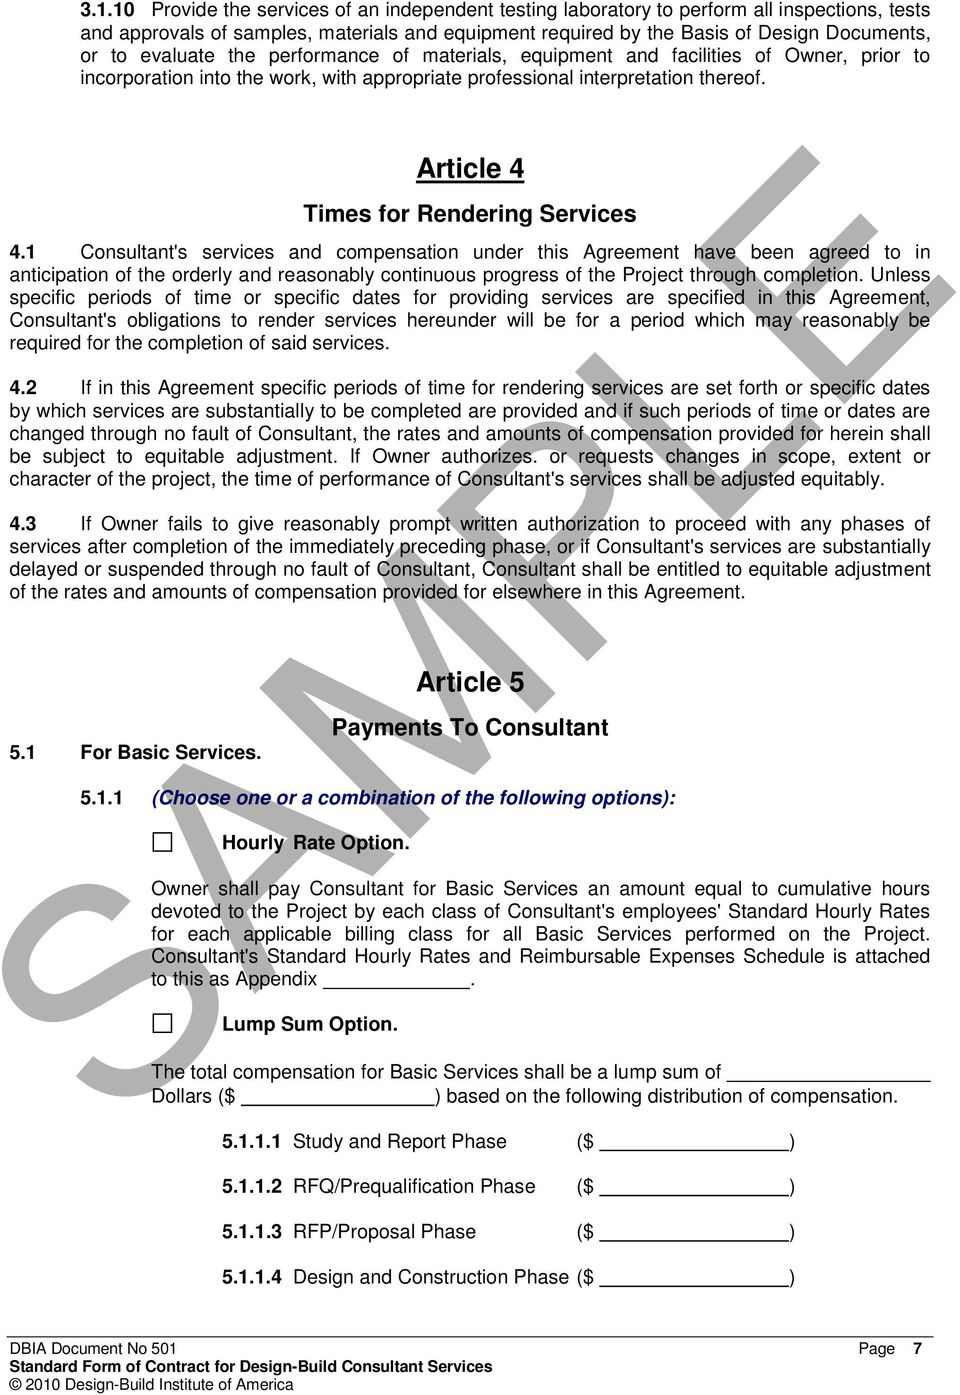 Standard Form Of Contract For Design Build Consultant Services Pdf